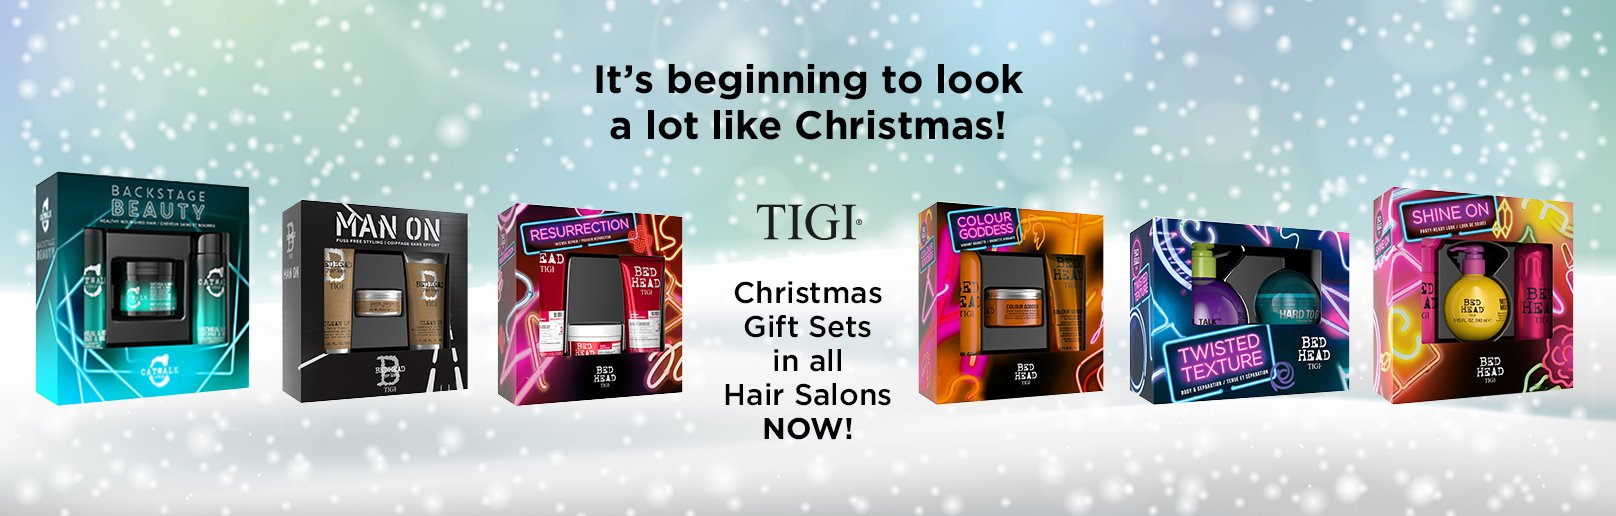 TIGI Christmas Gift Packs are available in all Forresters Hair Salons now